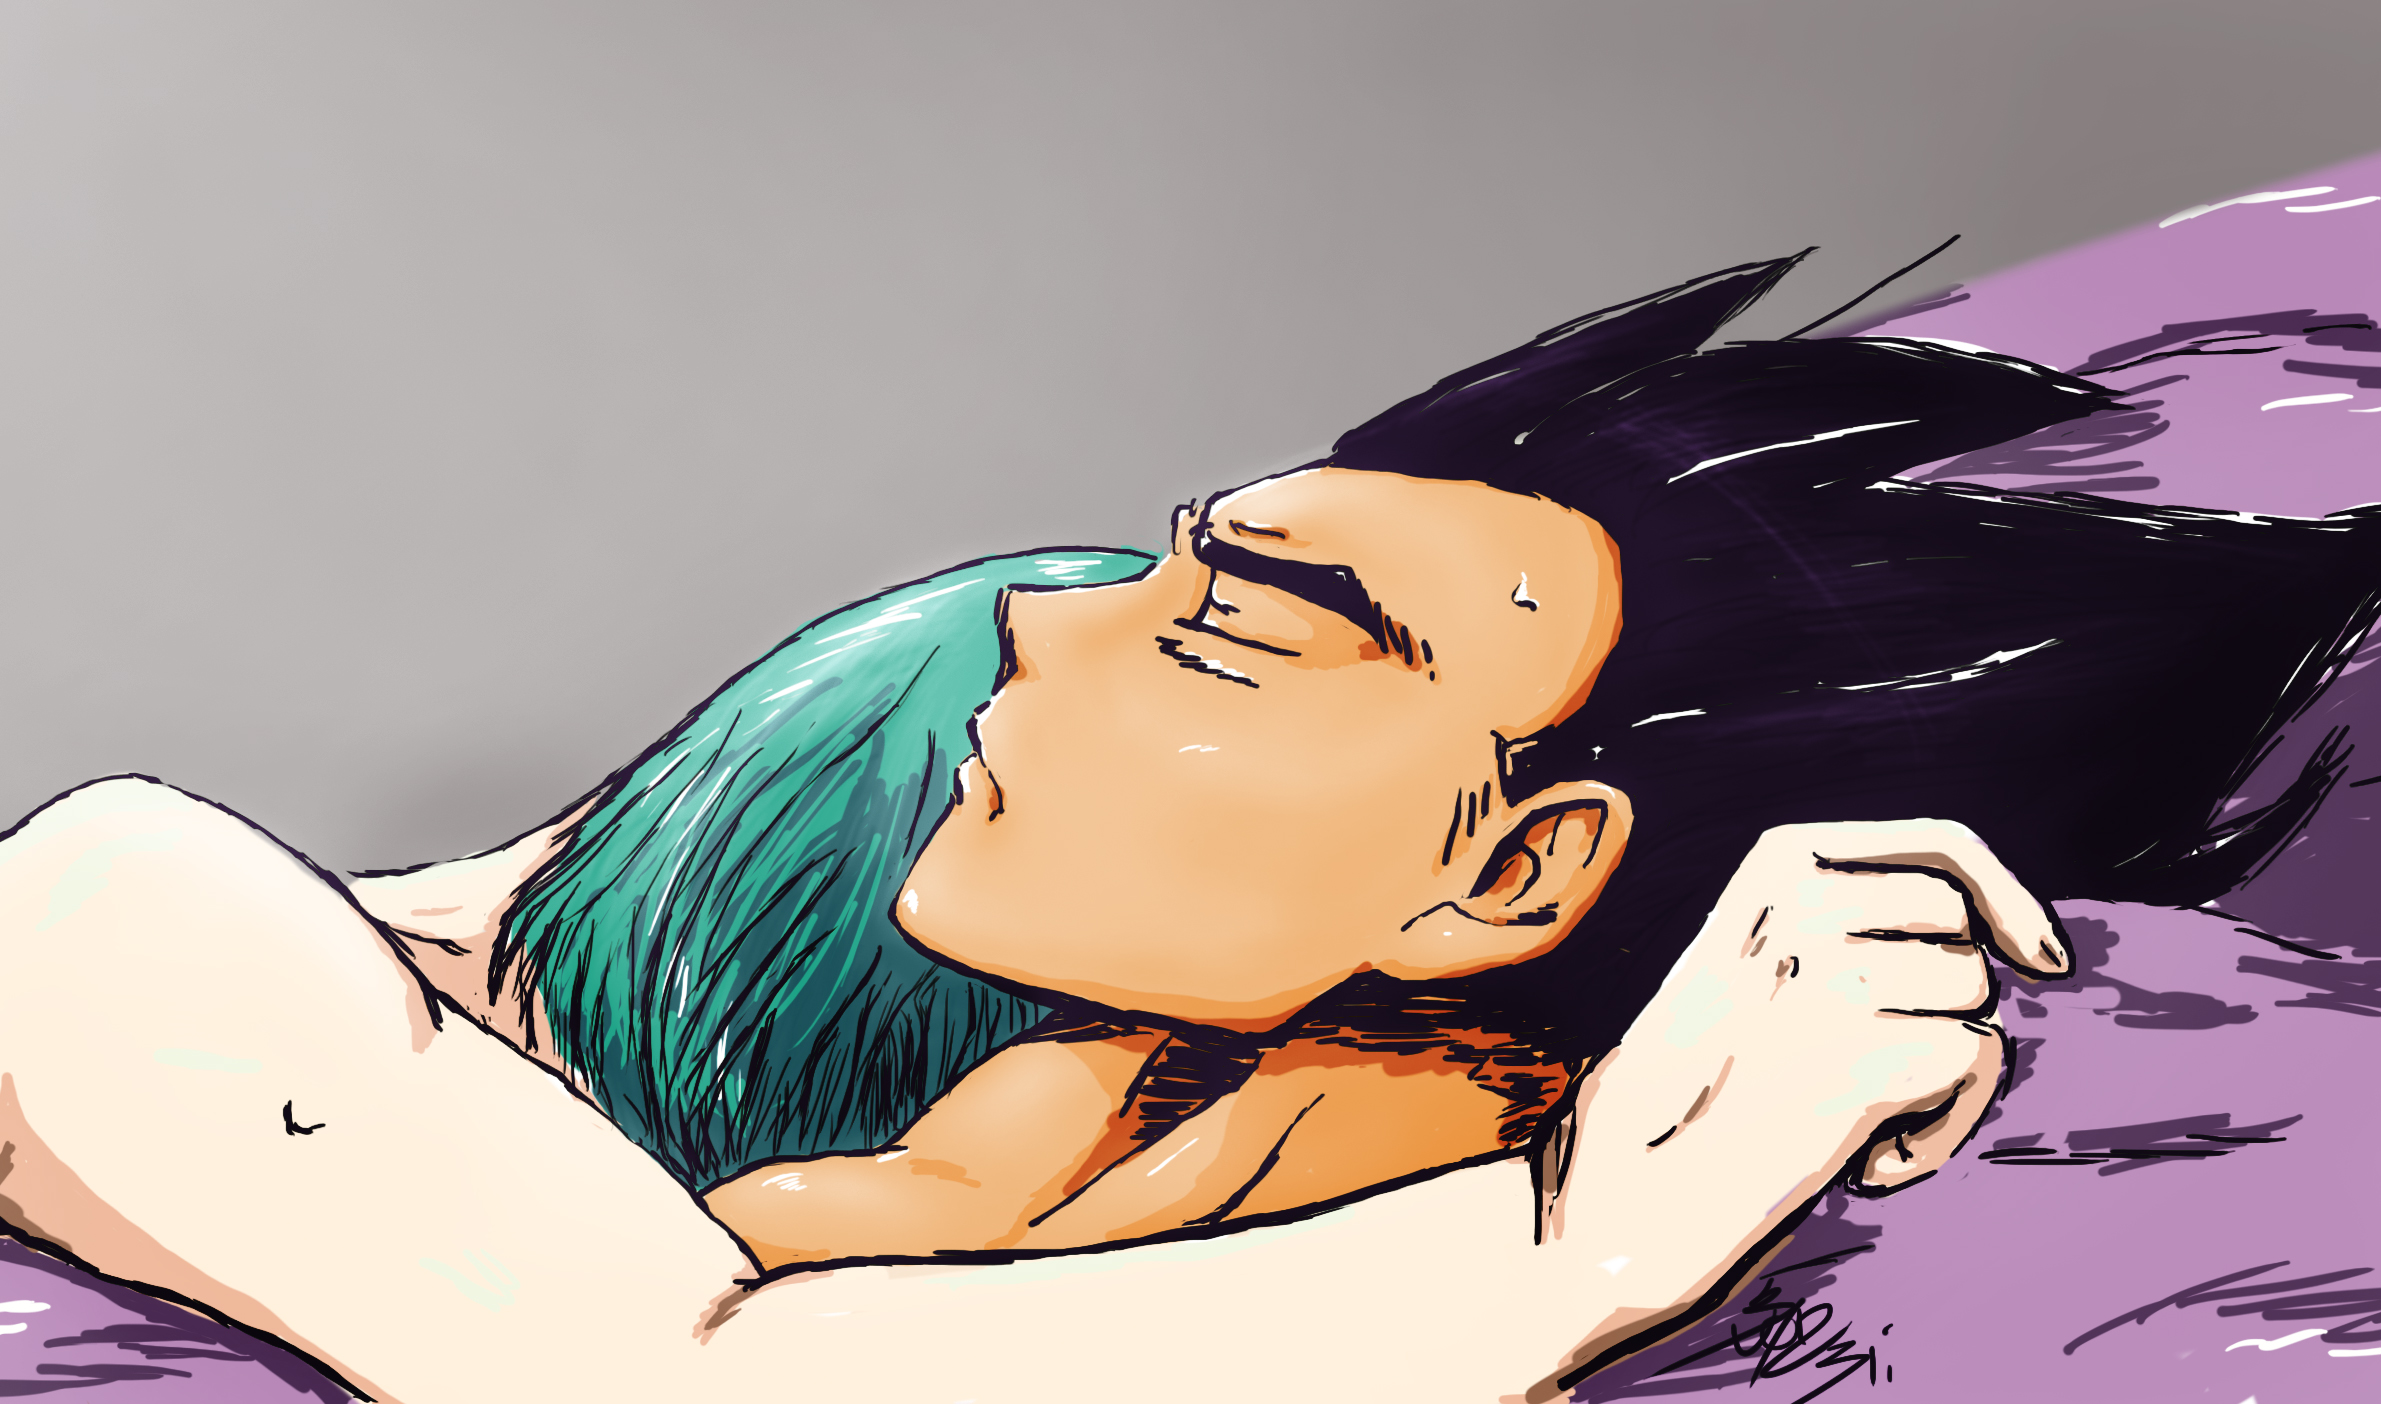 10kb trying to replace a 804520 w 814520 need wiring info fixyasleeping couple line art wiring diagrams \\u2022resting vegeta x bulma by evoneli88 on deviantart cat